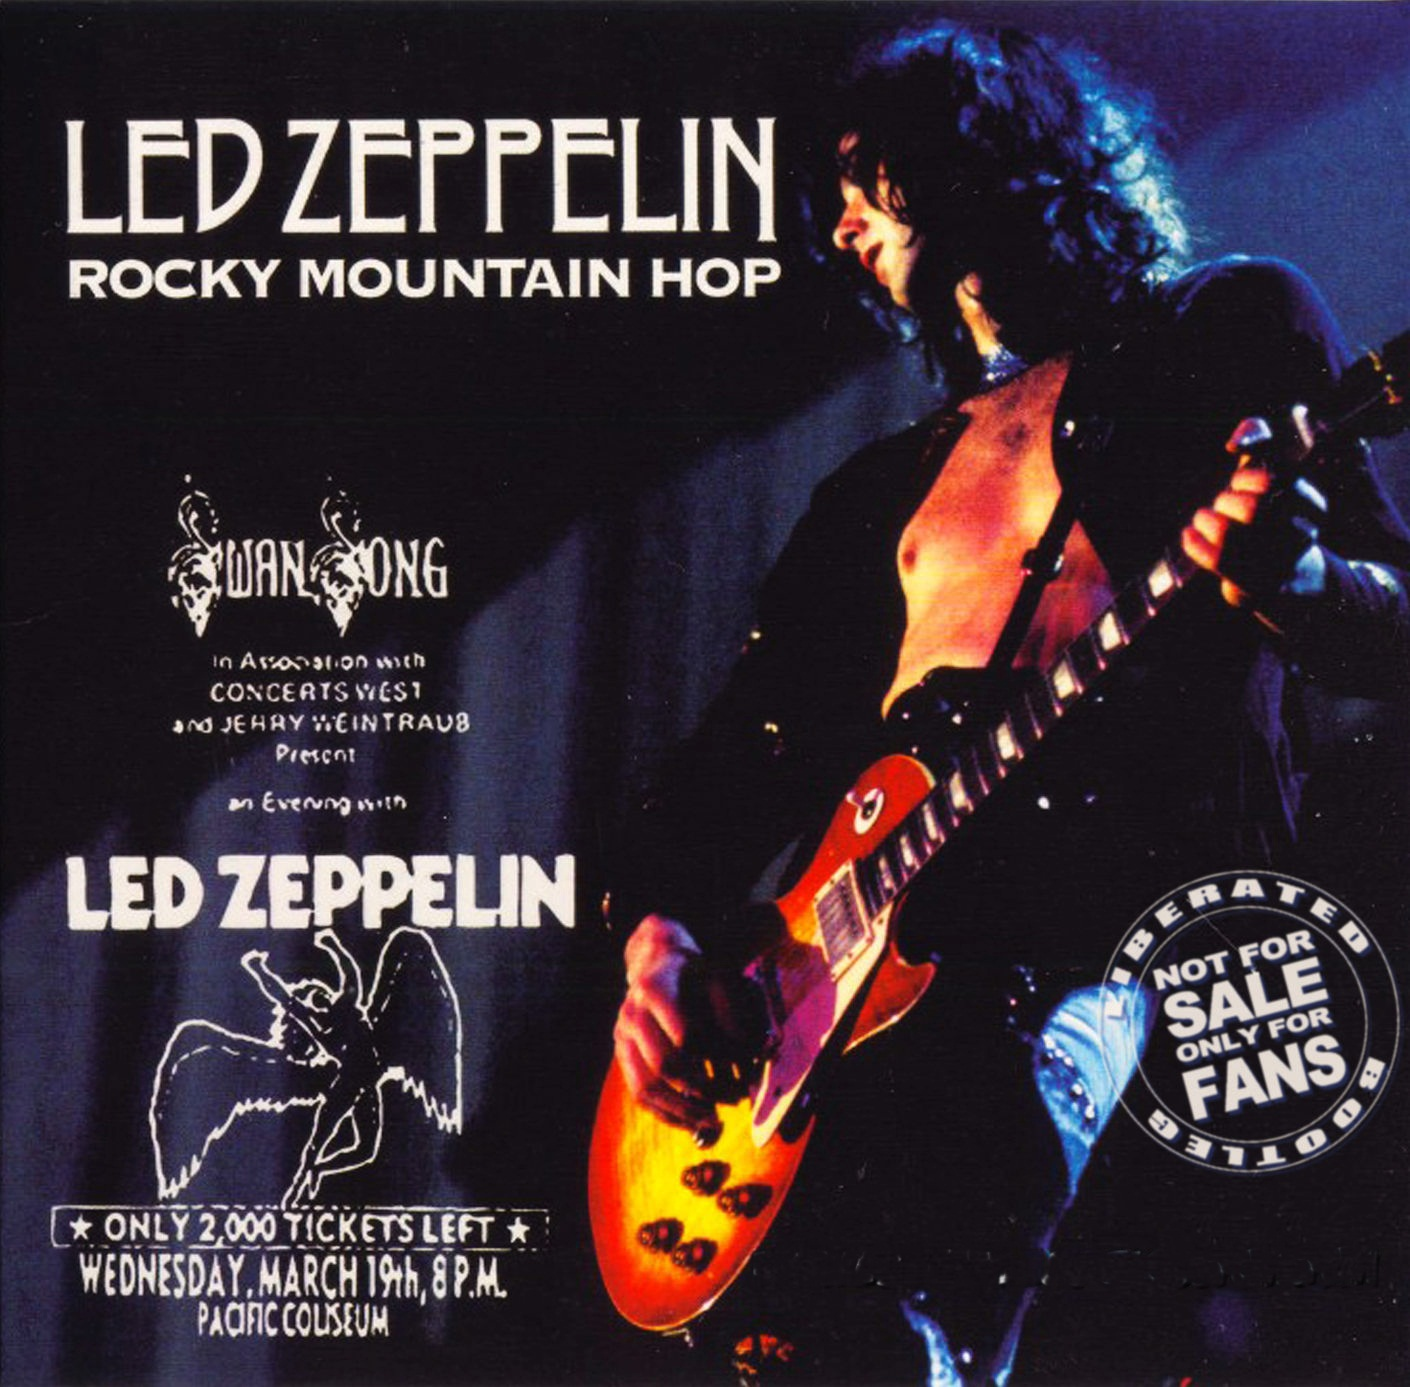 1975 - Led Zeppelin - Rocky Mountain Hop - Vancouver